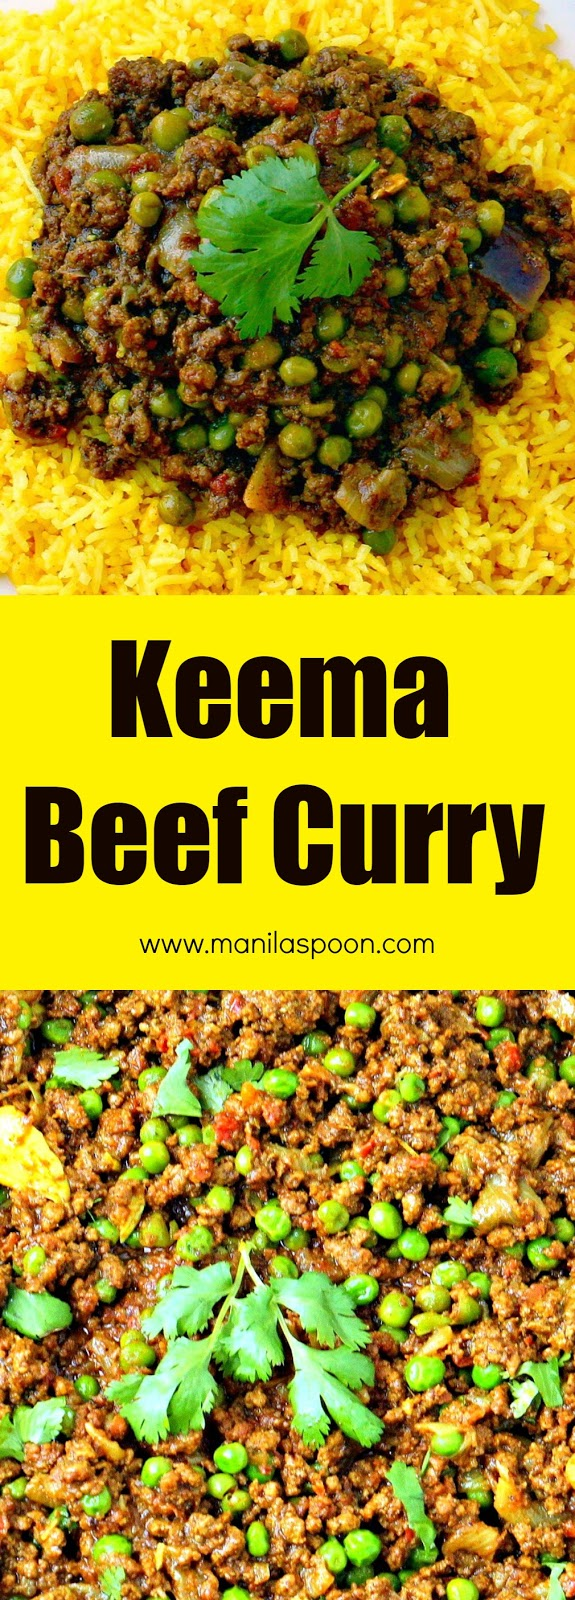 Easy, tasty and not much prep is required to make this ground beef Keema curry!